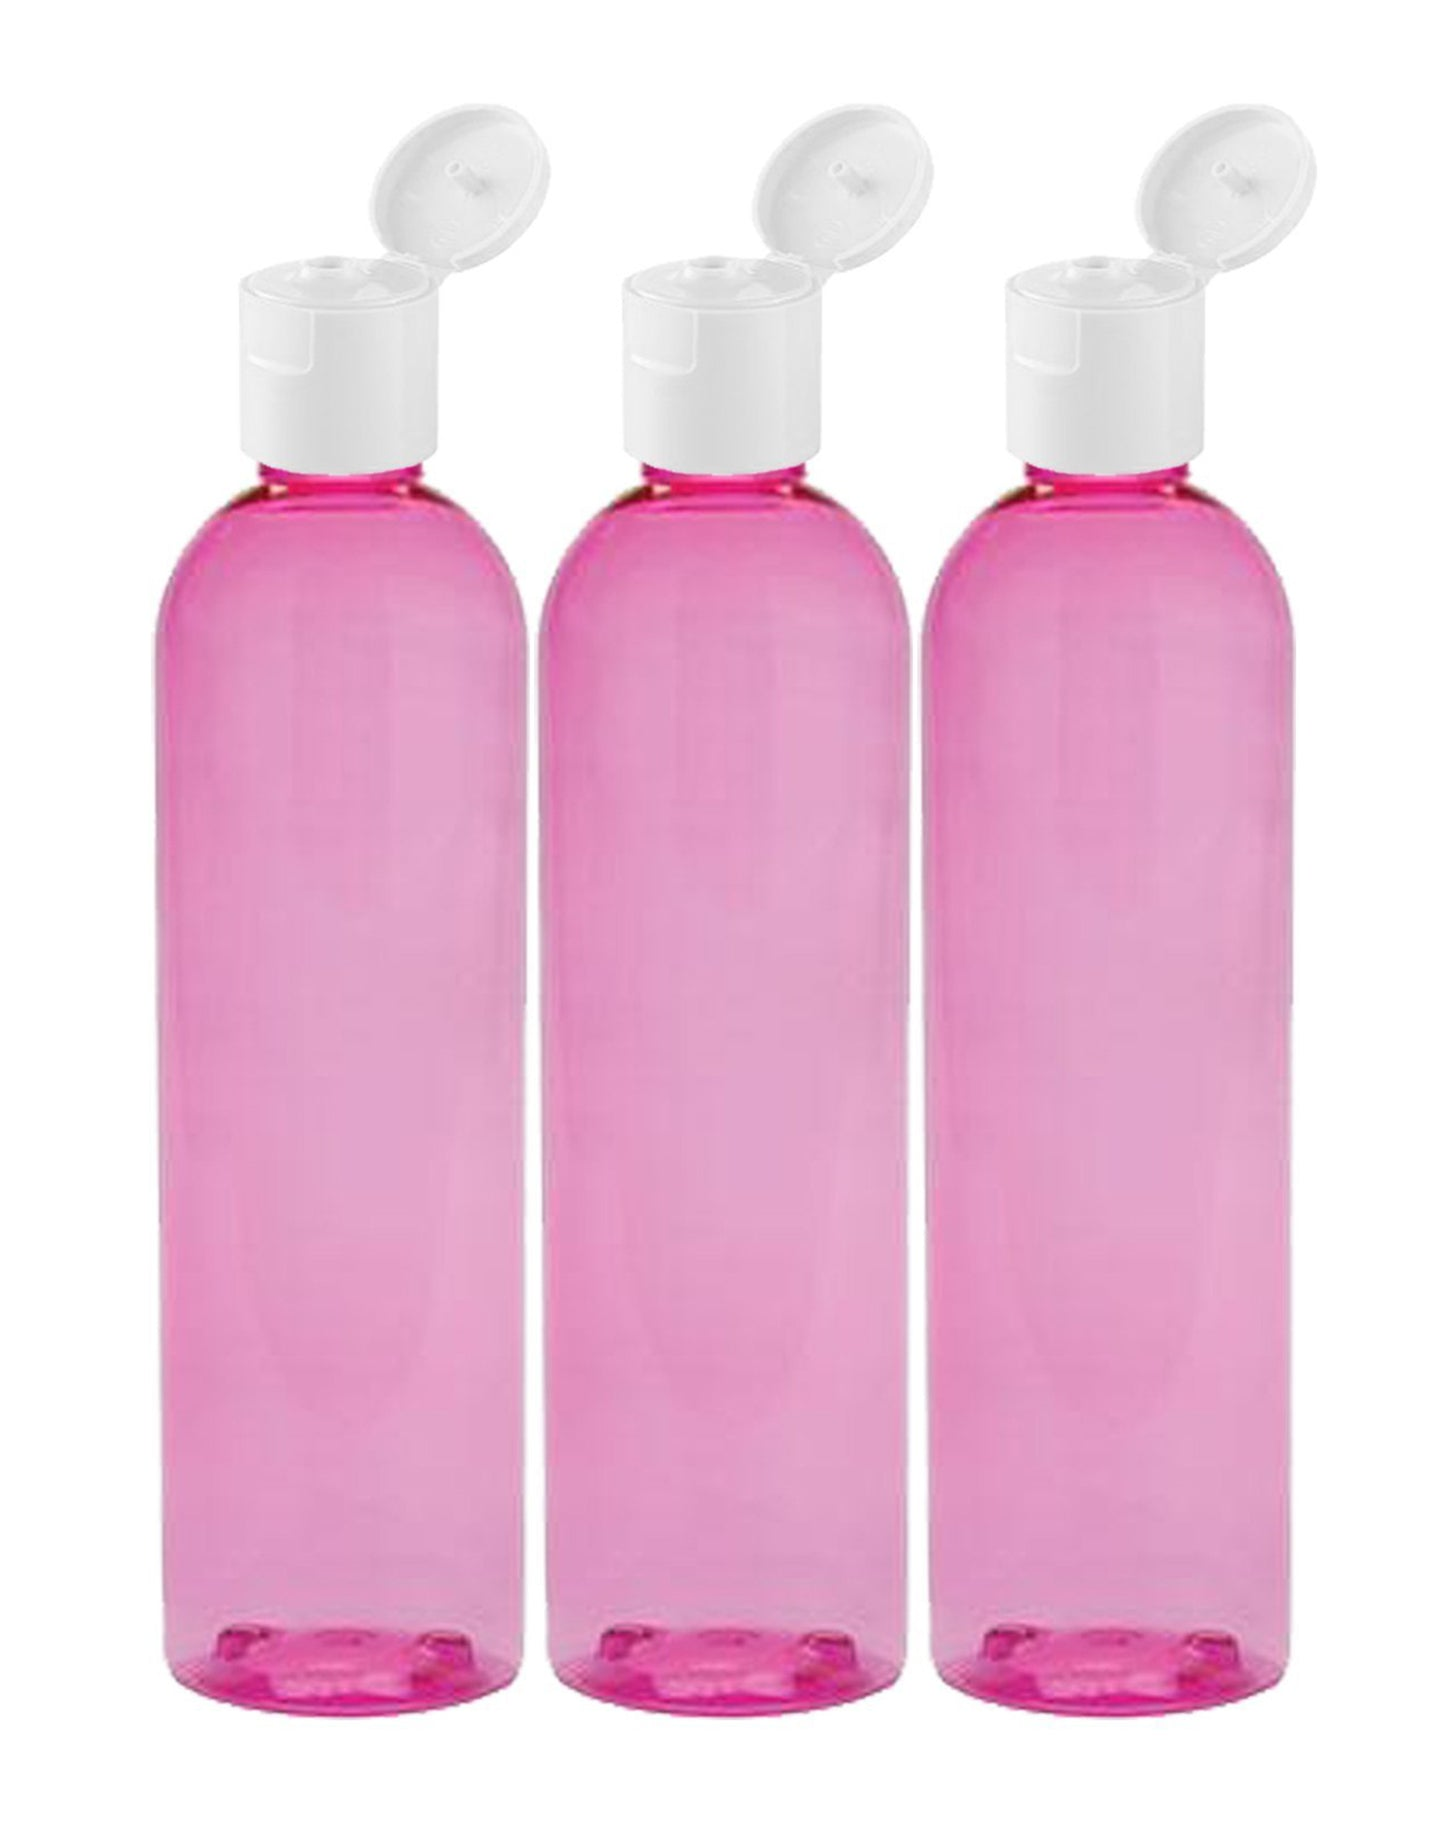 MoYo Natural Labs 8 oz Travel Bottles, Empty Travel Containers with Flip Caps, BPA Free PET Plastic Squeezable Toiletry/Cosmetic Bottles (3 pack, Candy pink)